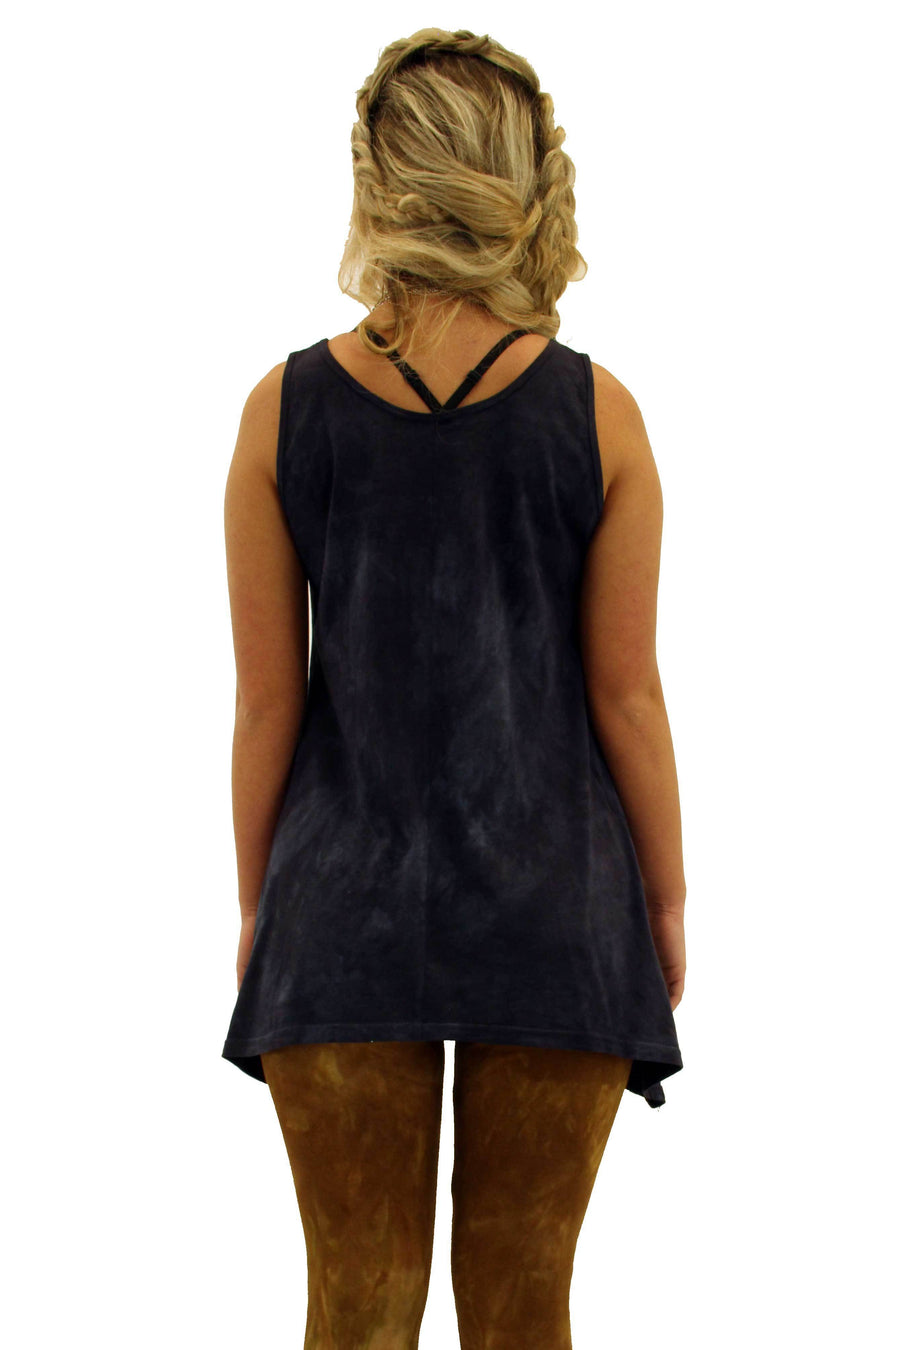 Steel Pony tank Small / Black Dara Tank Tunic